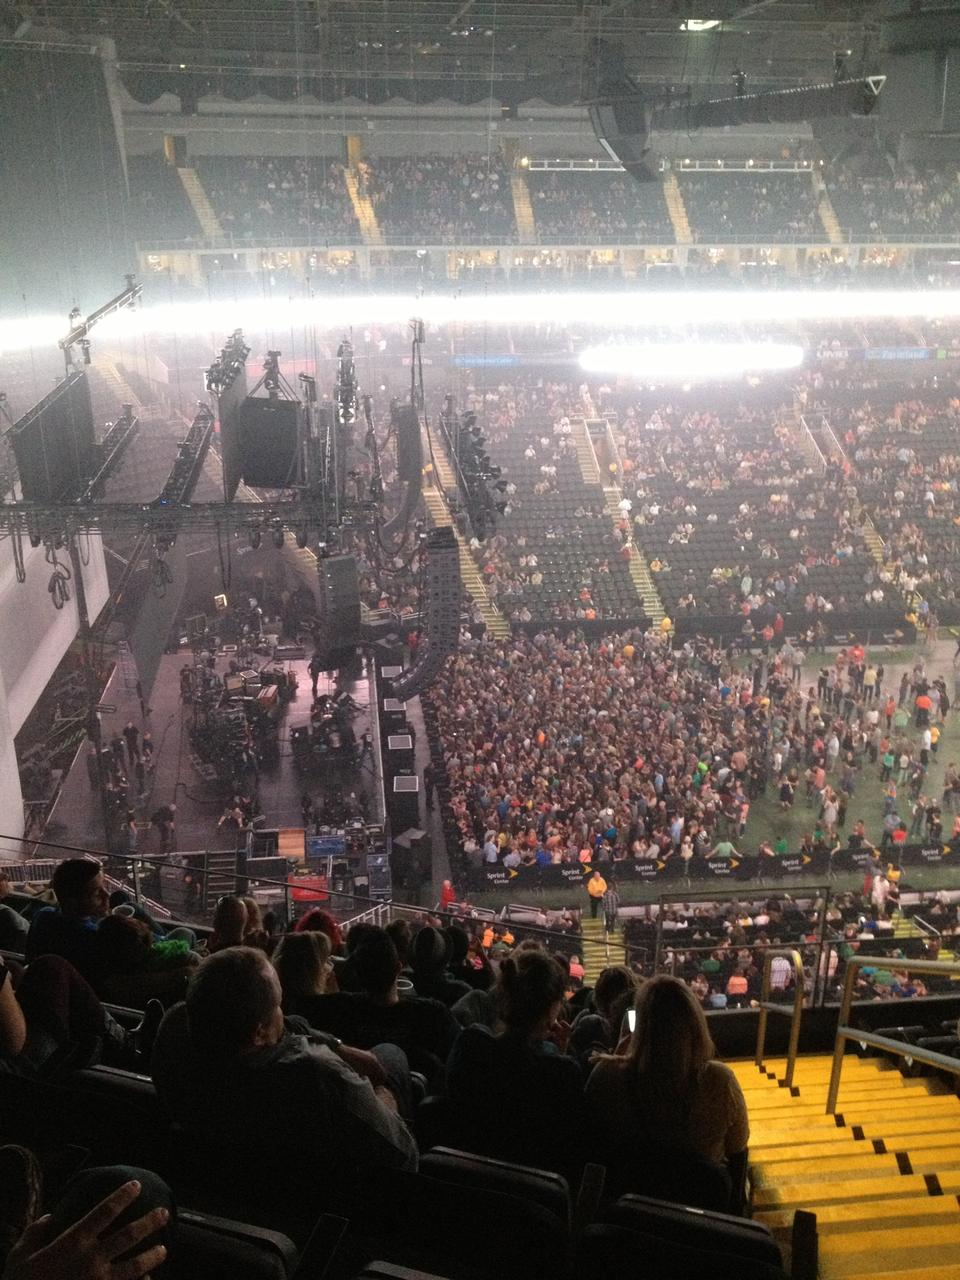 Sprint Center Section 211 Concert Seating Rateyourseats Com